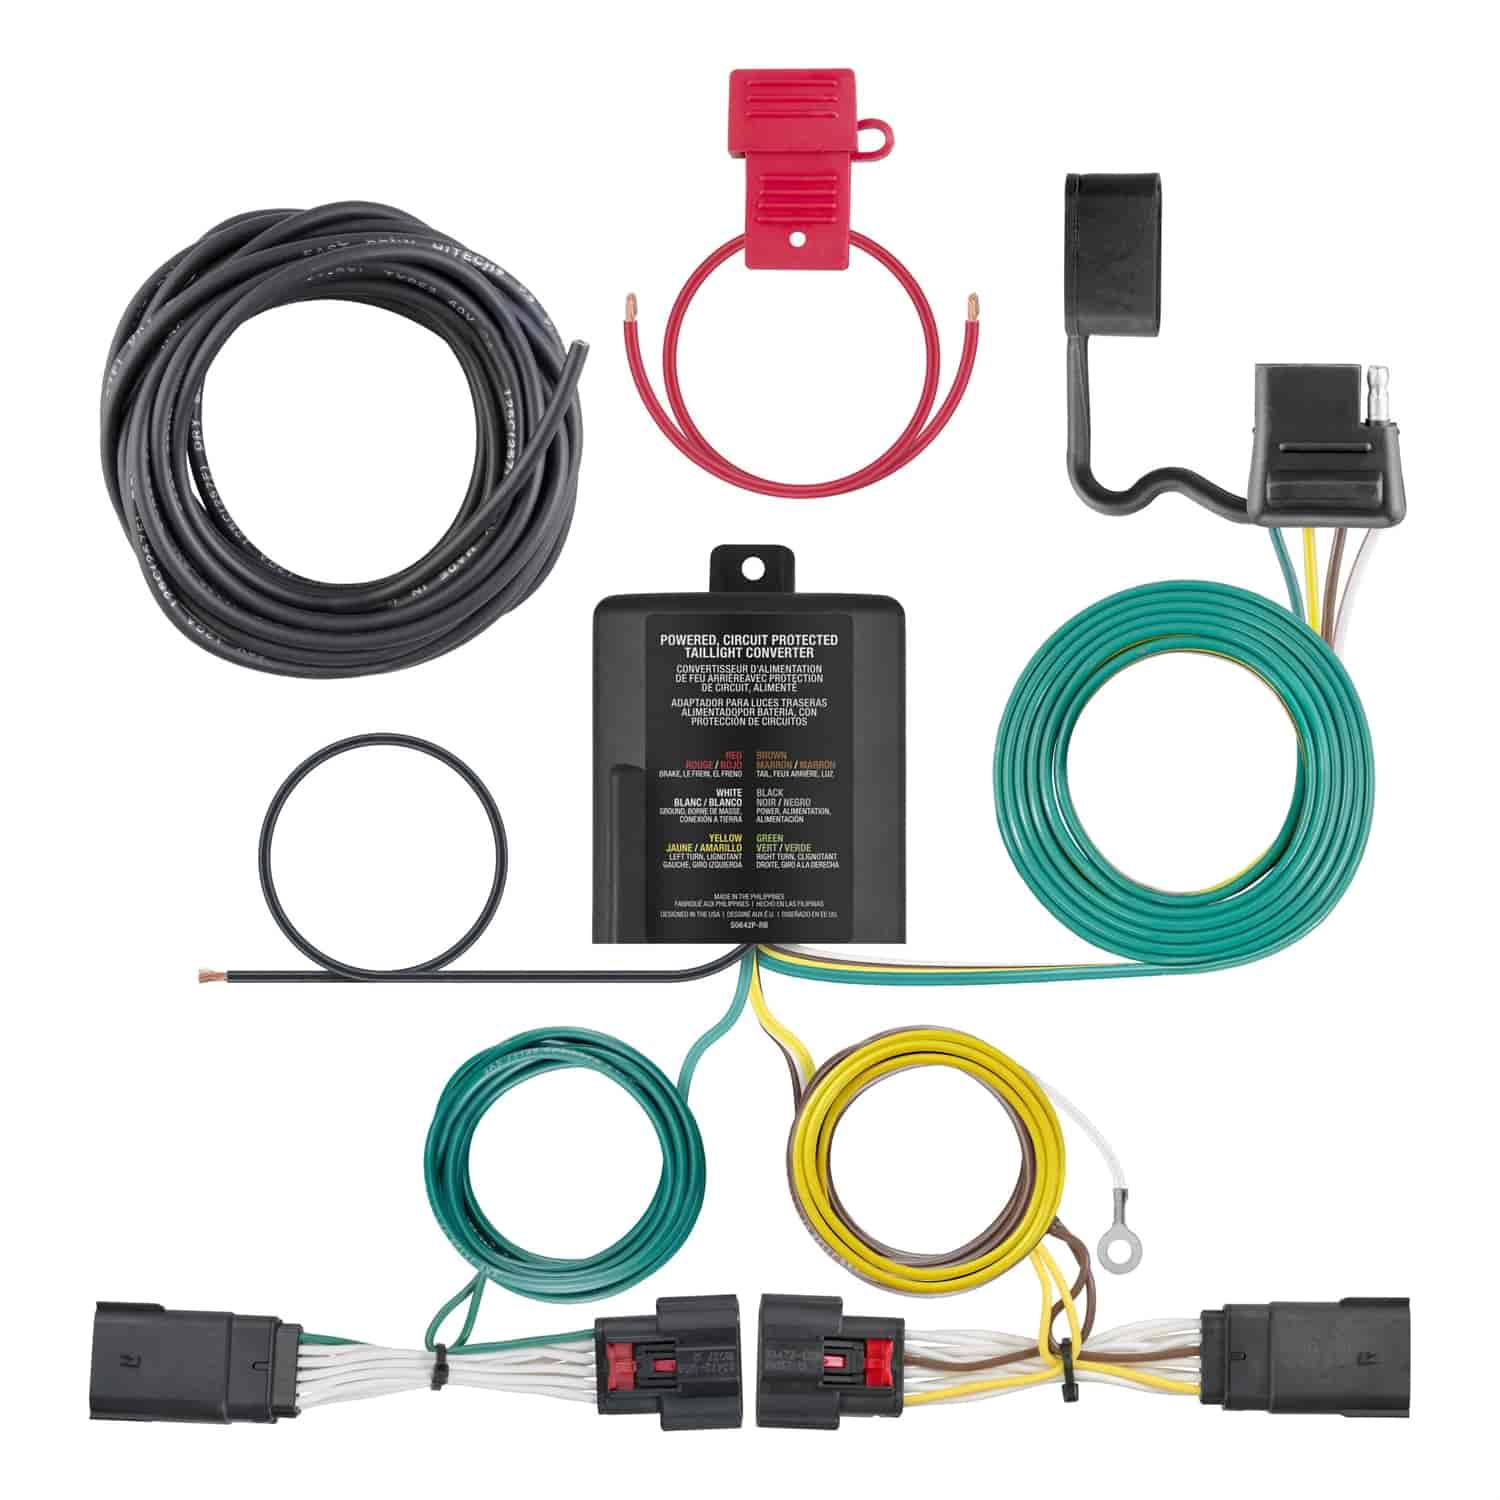 hight resolution of curt trailer hitch wiring kit for 2018 jeep wrangler jl curt 56407